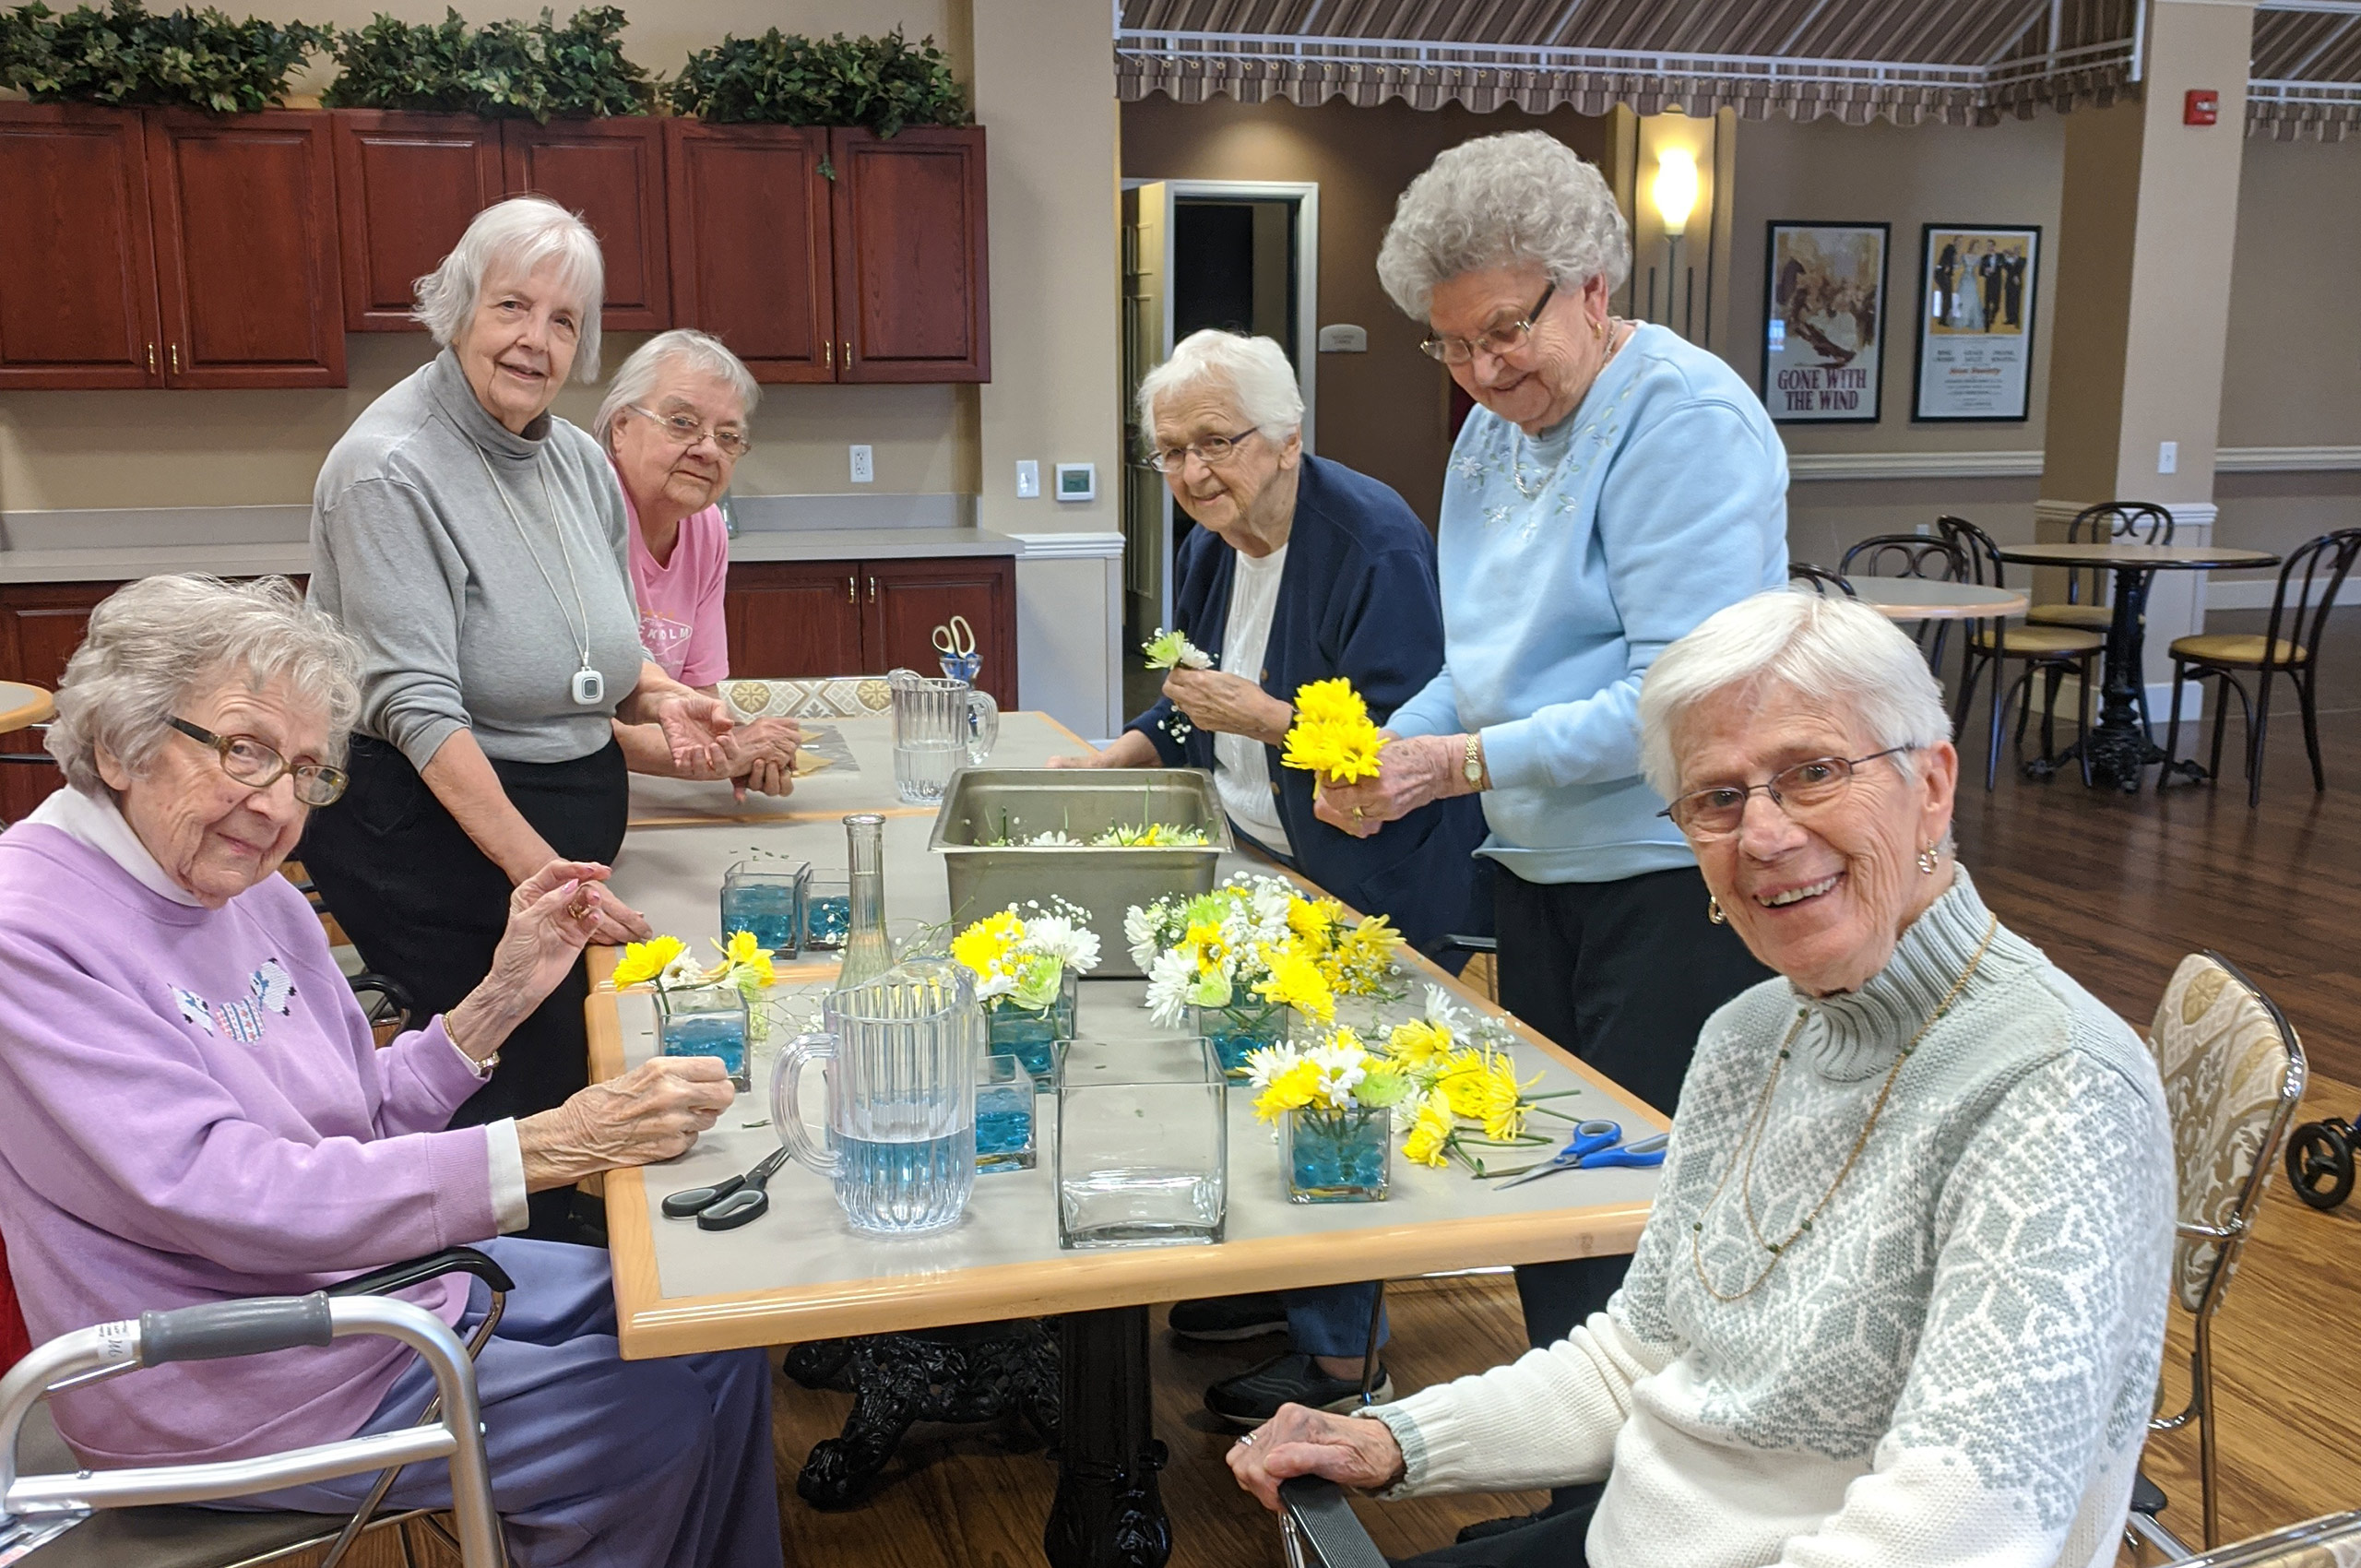 making bouquets with yellow flowers